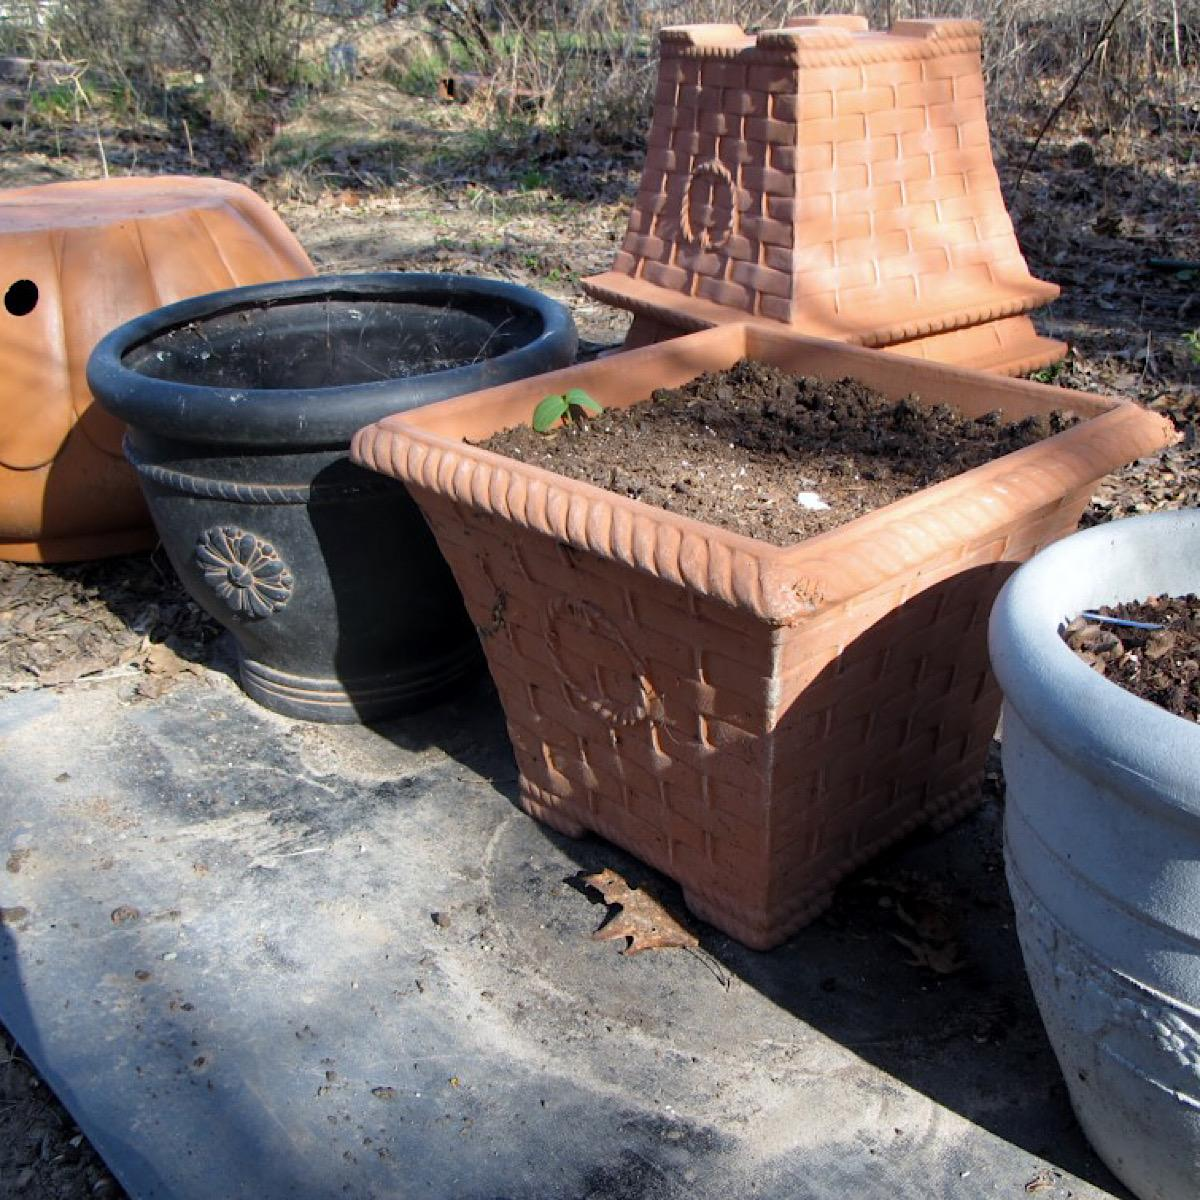 Large pots ready for planting tomatoes